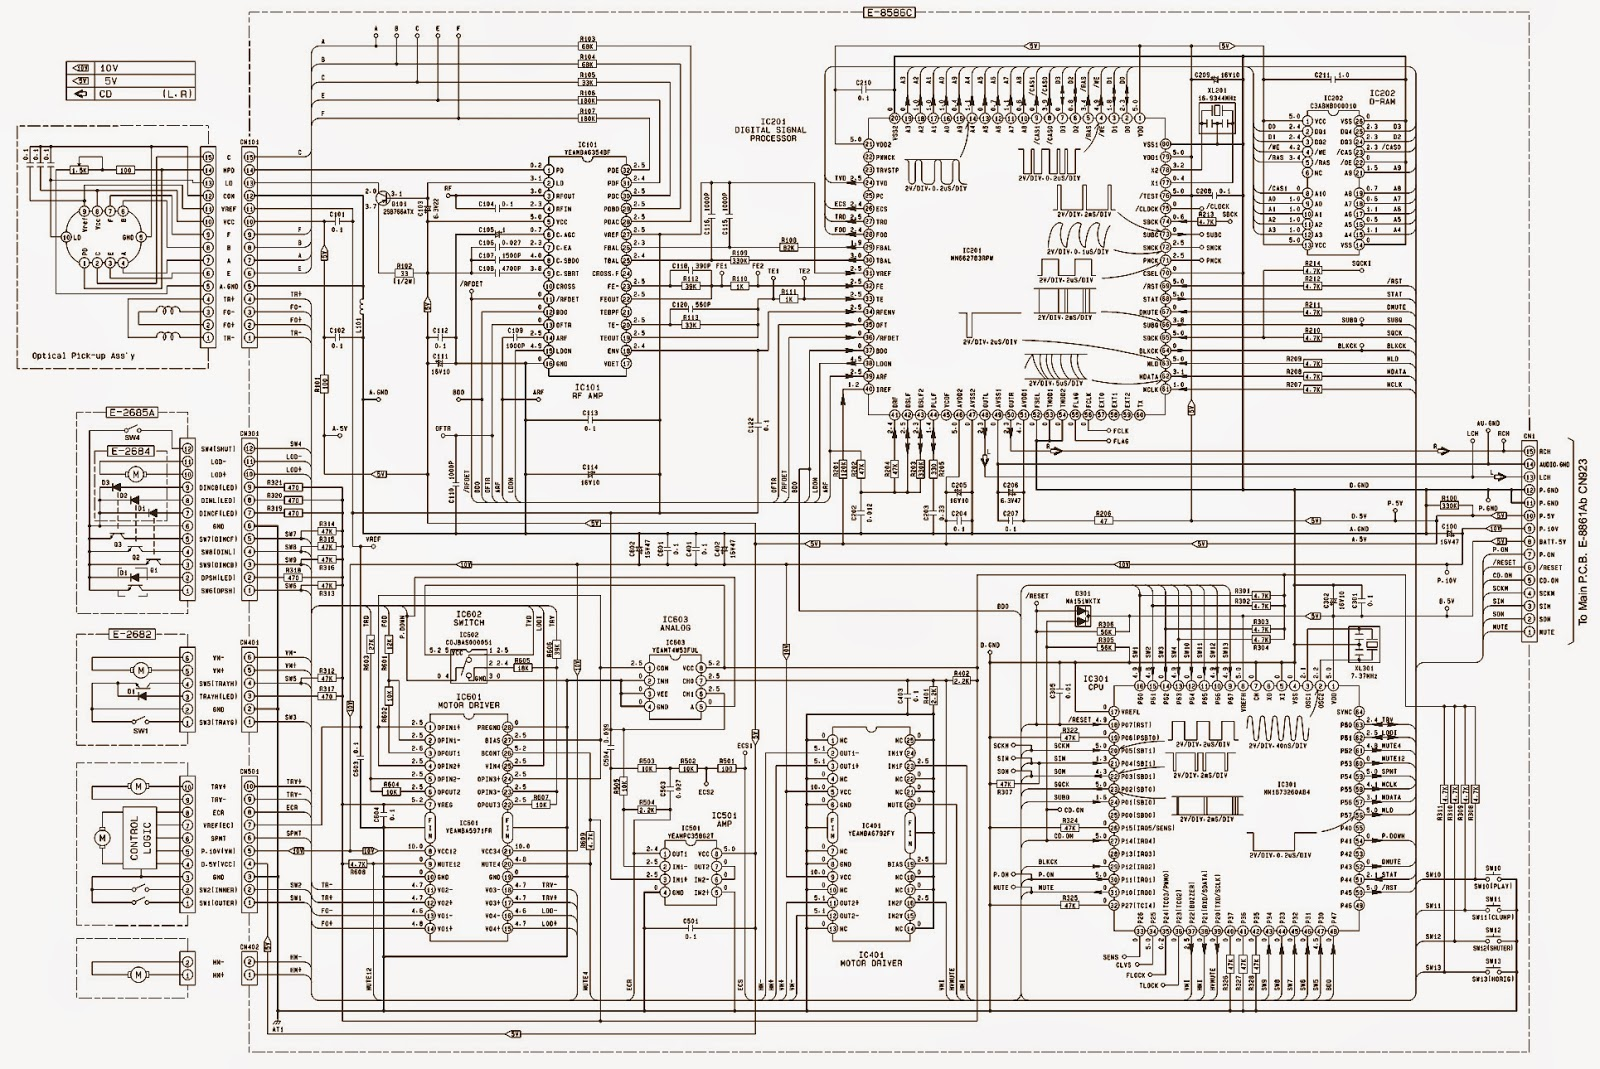 Cq eh9160a panasonic car audio system alignment schematic cq eh9160a panasonic car audio system alignment schematic ccuart Images